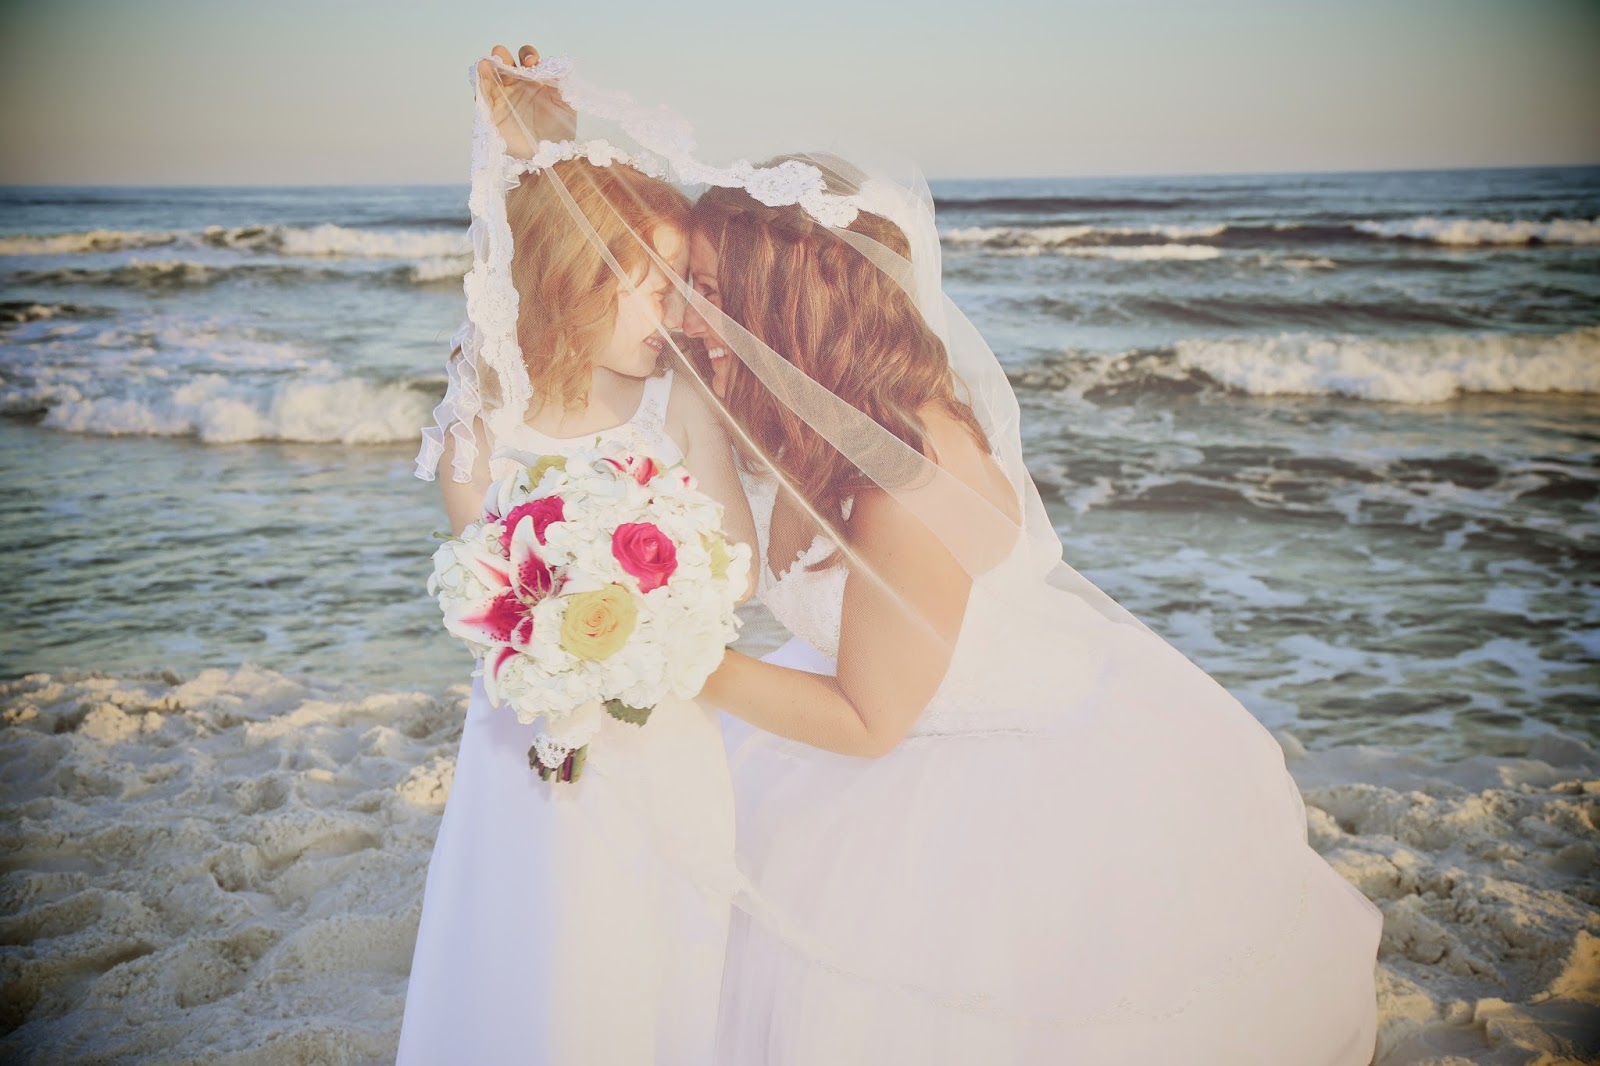 Blending Families for Beach wedding ceremonies in Pensacola Beach